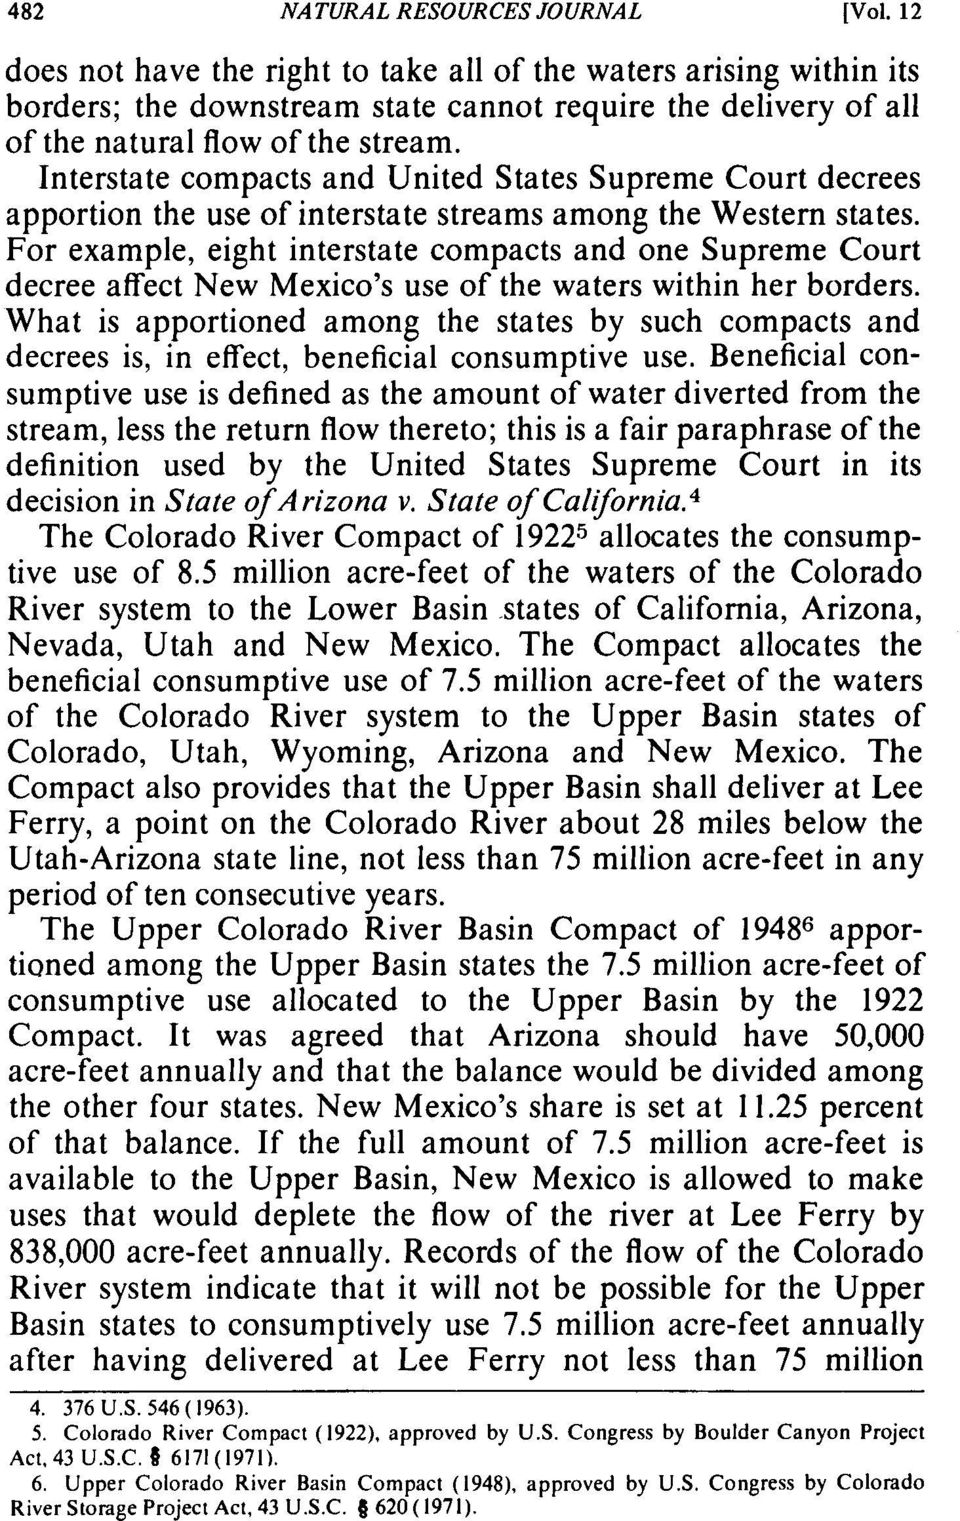 Interstate compacts and United States Supreme Court decrees apportion the use of interstate streams among the Western states.